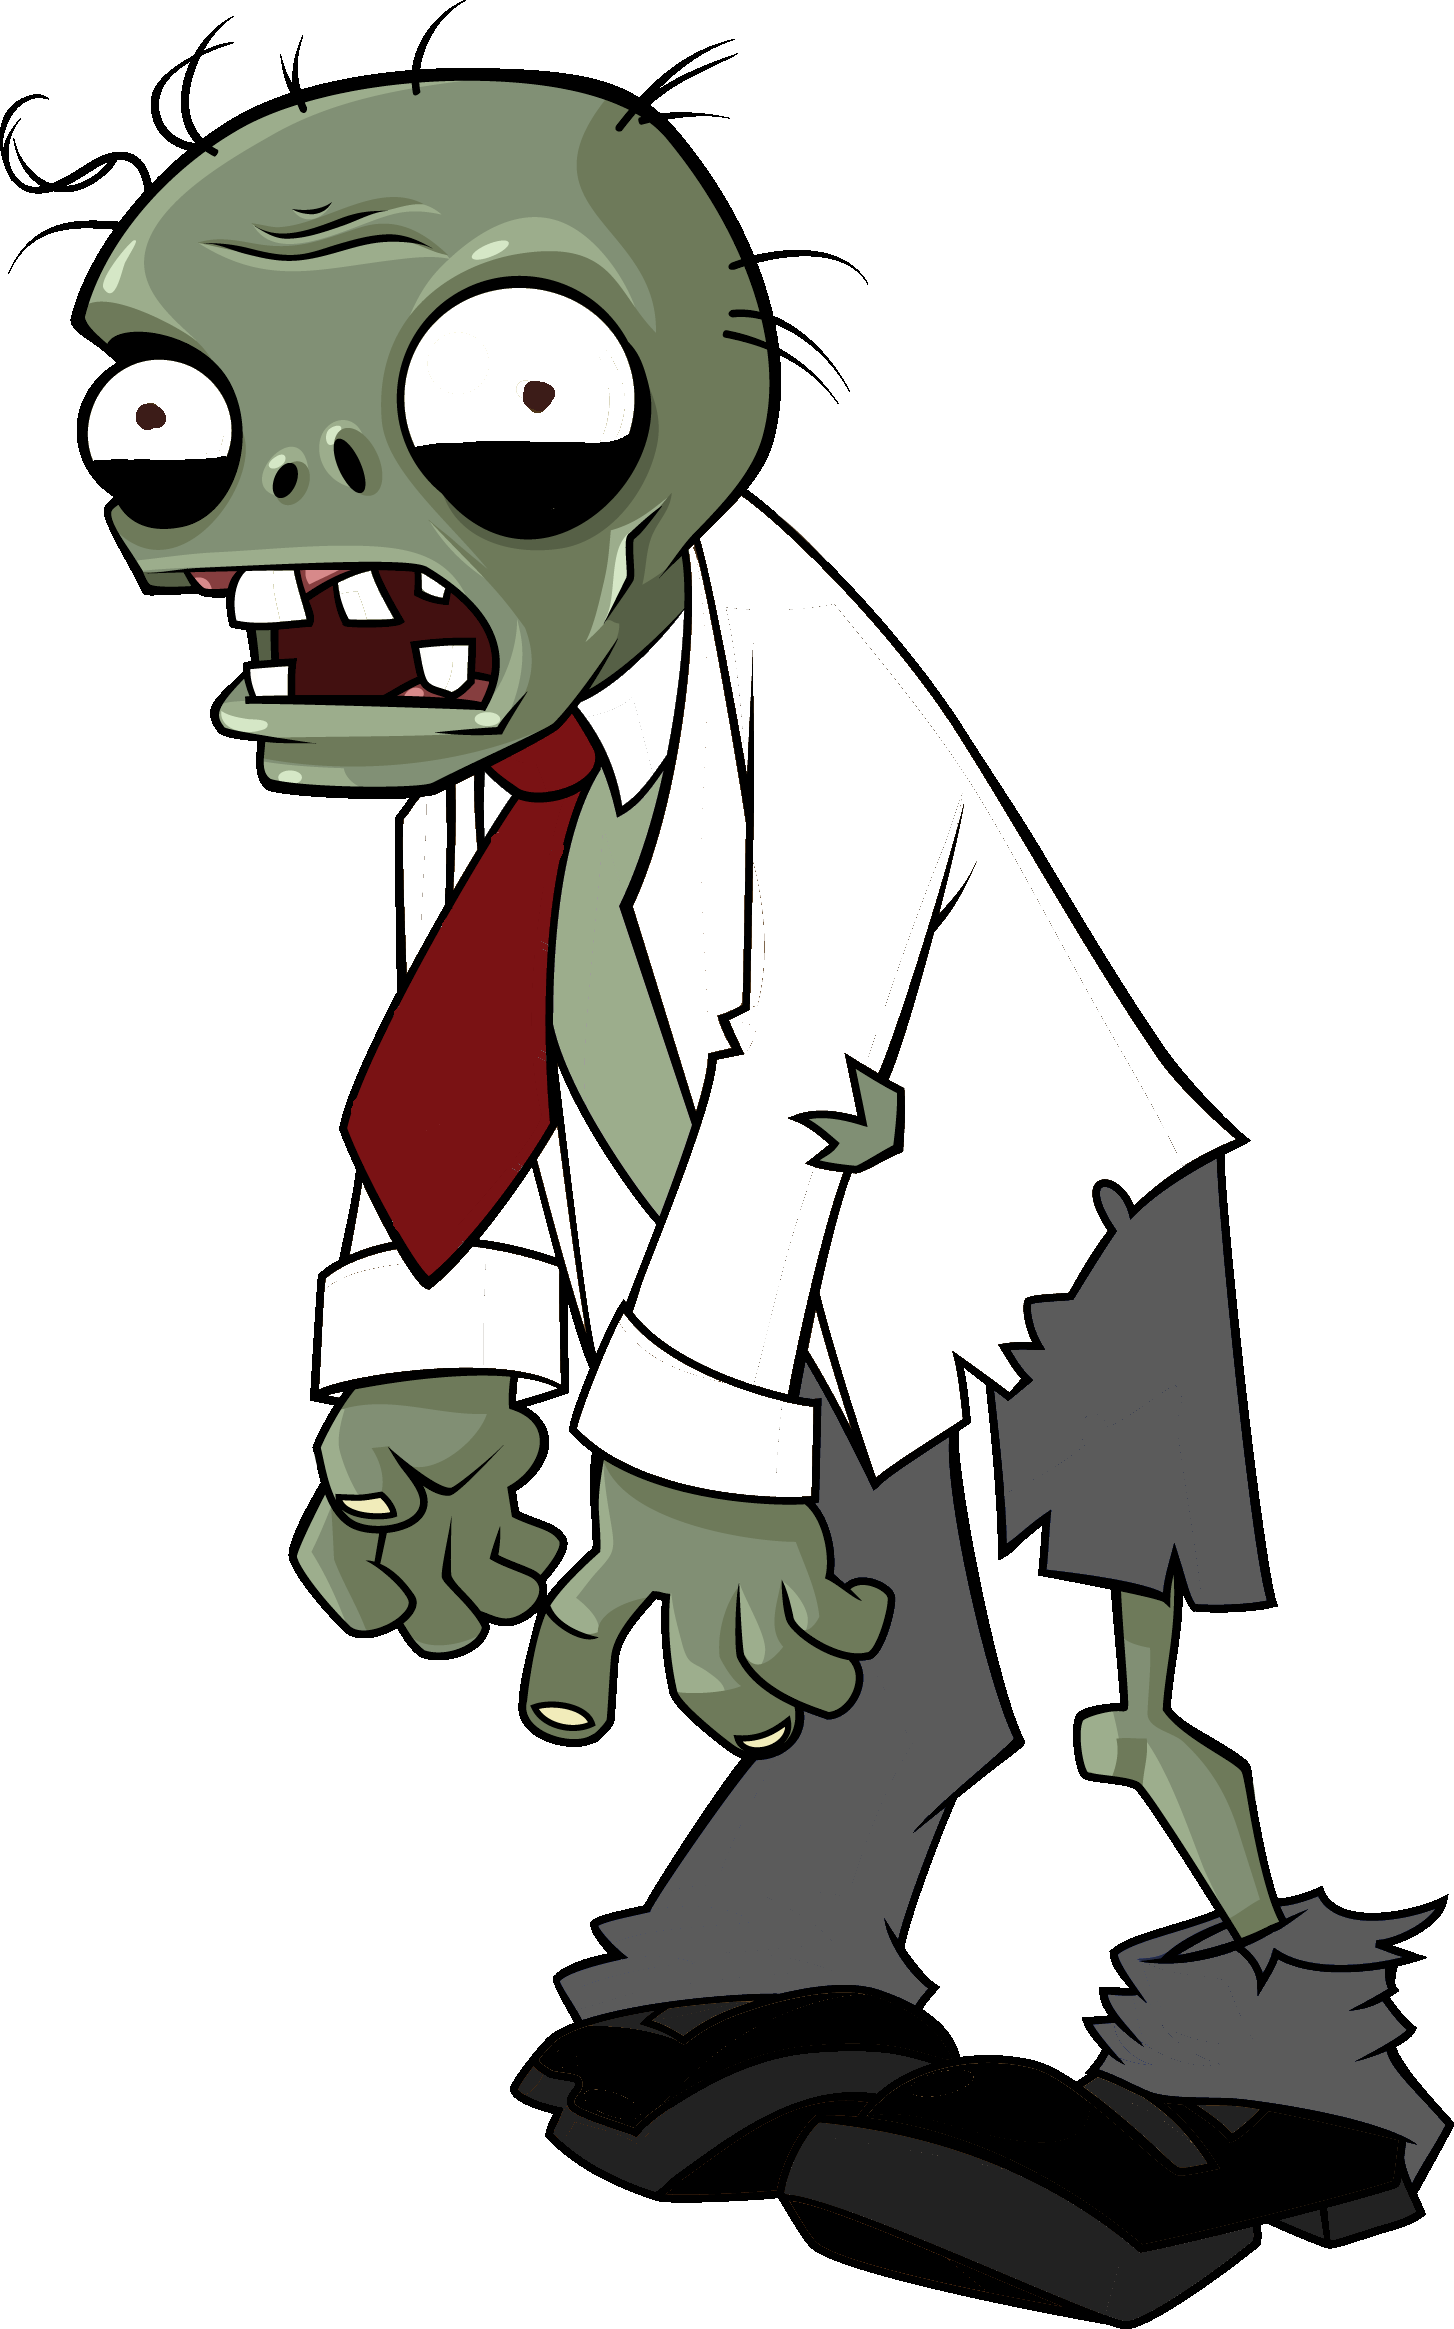 Plants vs zombies zombie characters png. Image louis the fallen